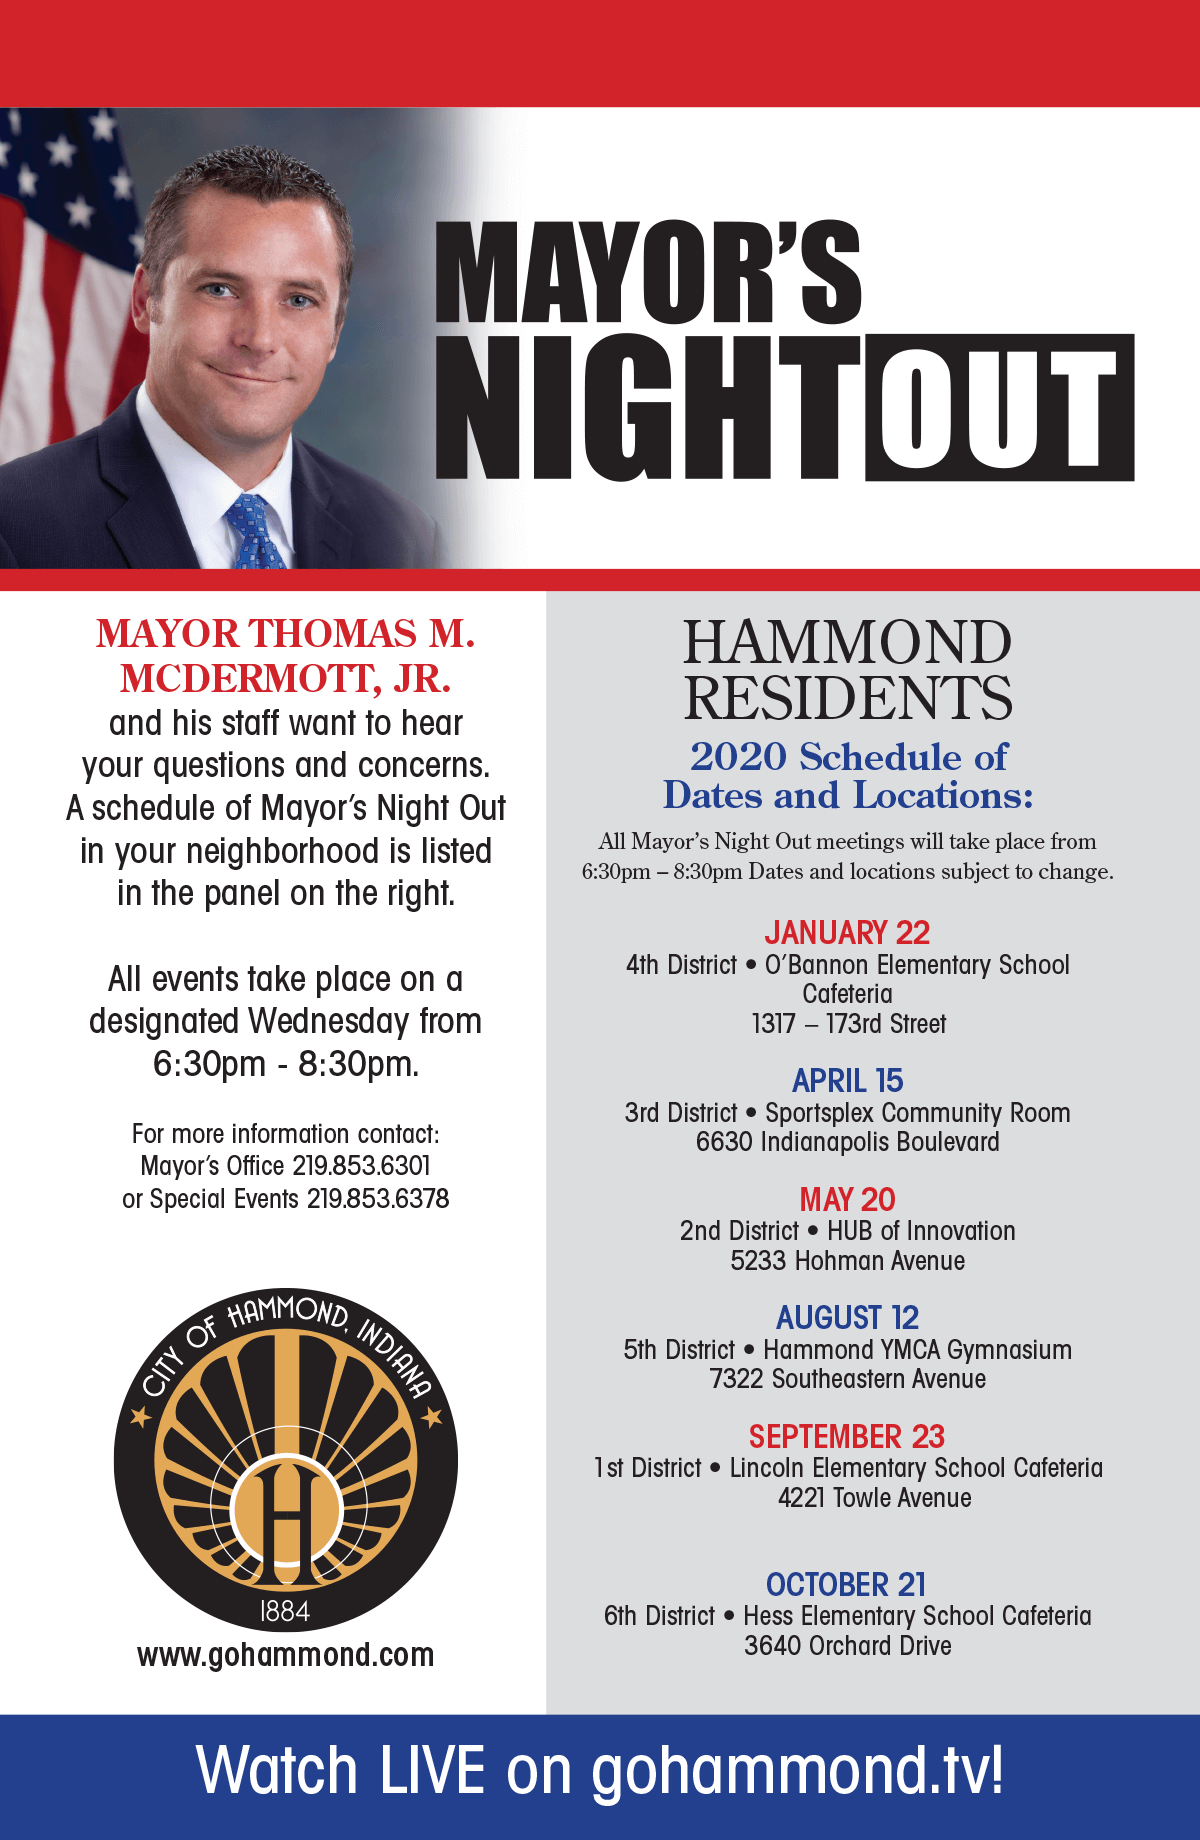 2020 Mayor's Night Out Schedule